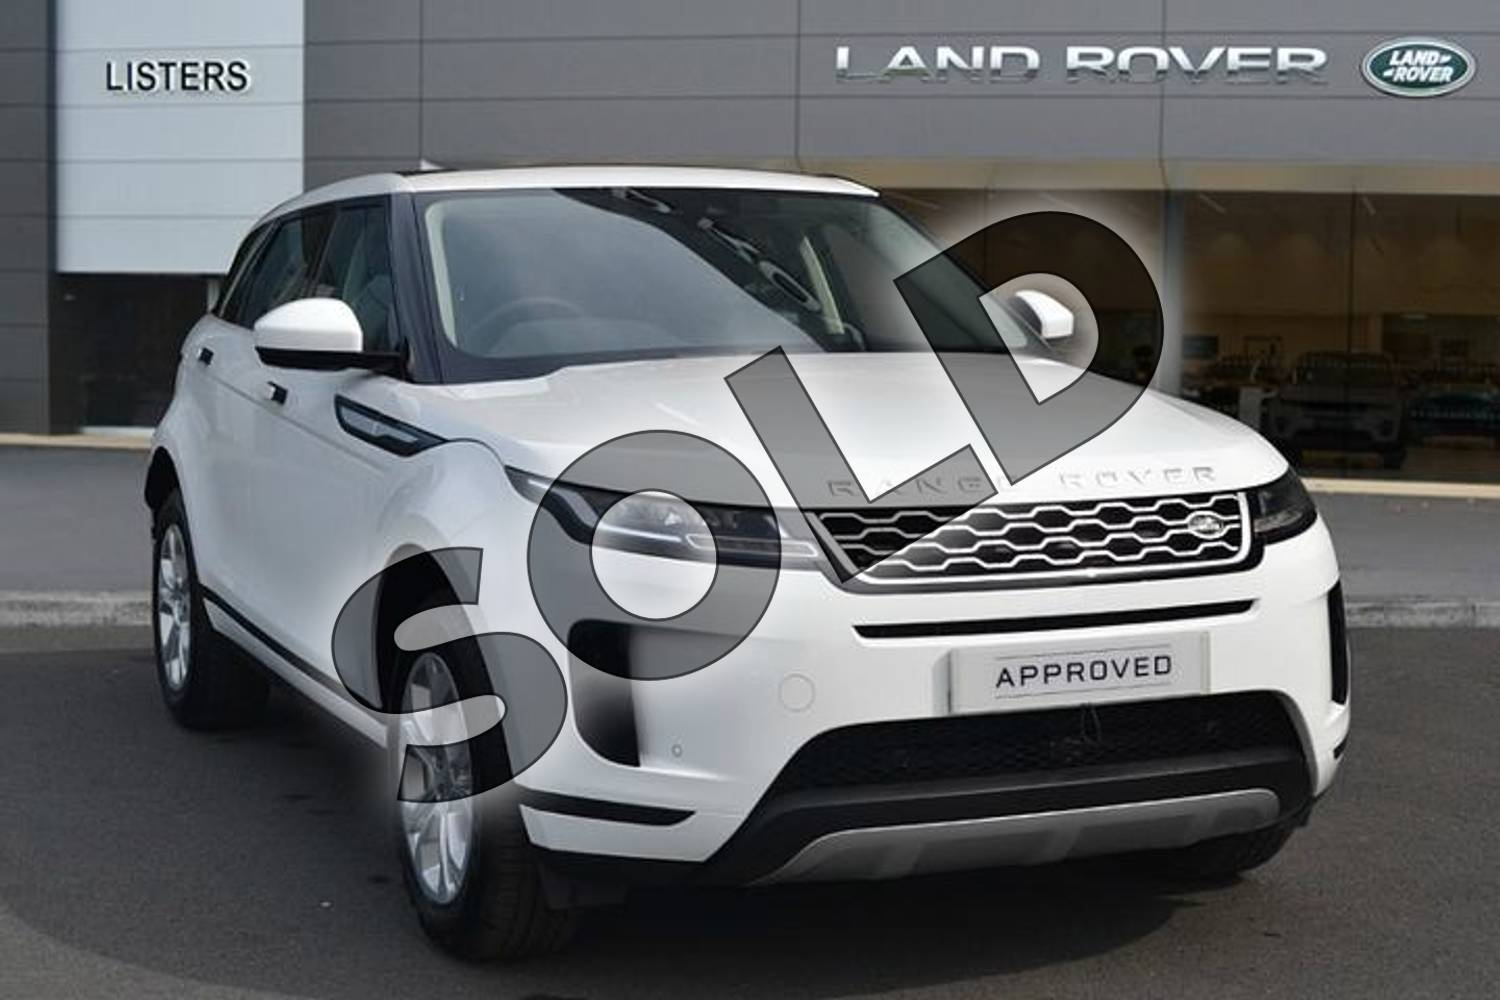 2019 Range Rover Evoque Diesel Hatchback Diesel 2.0 D180 S 5dr Auto in Fuji White at Listers Land Rover Hereford